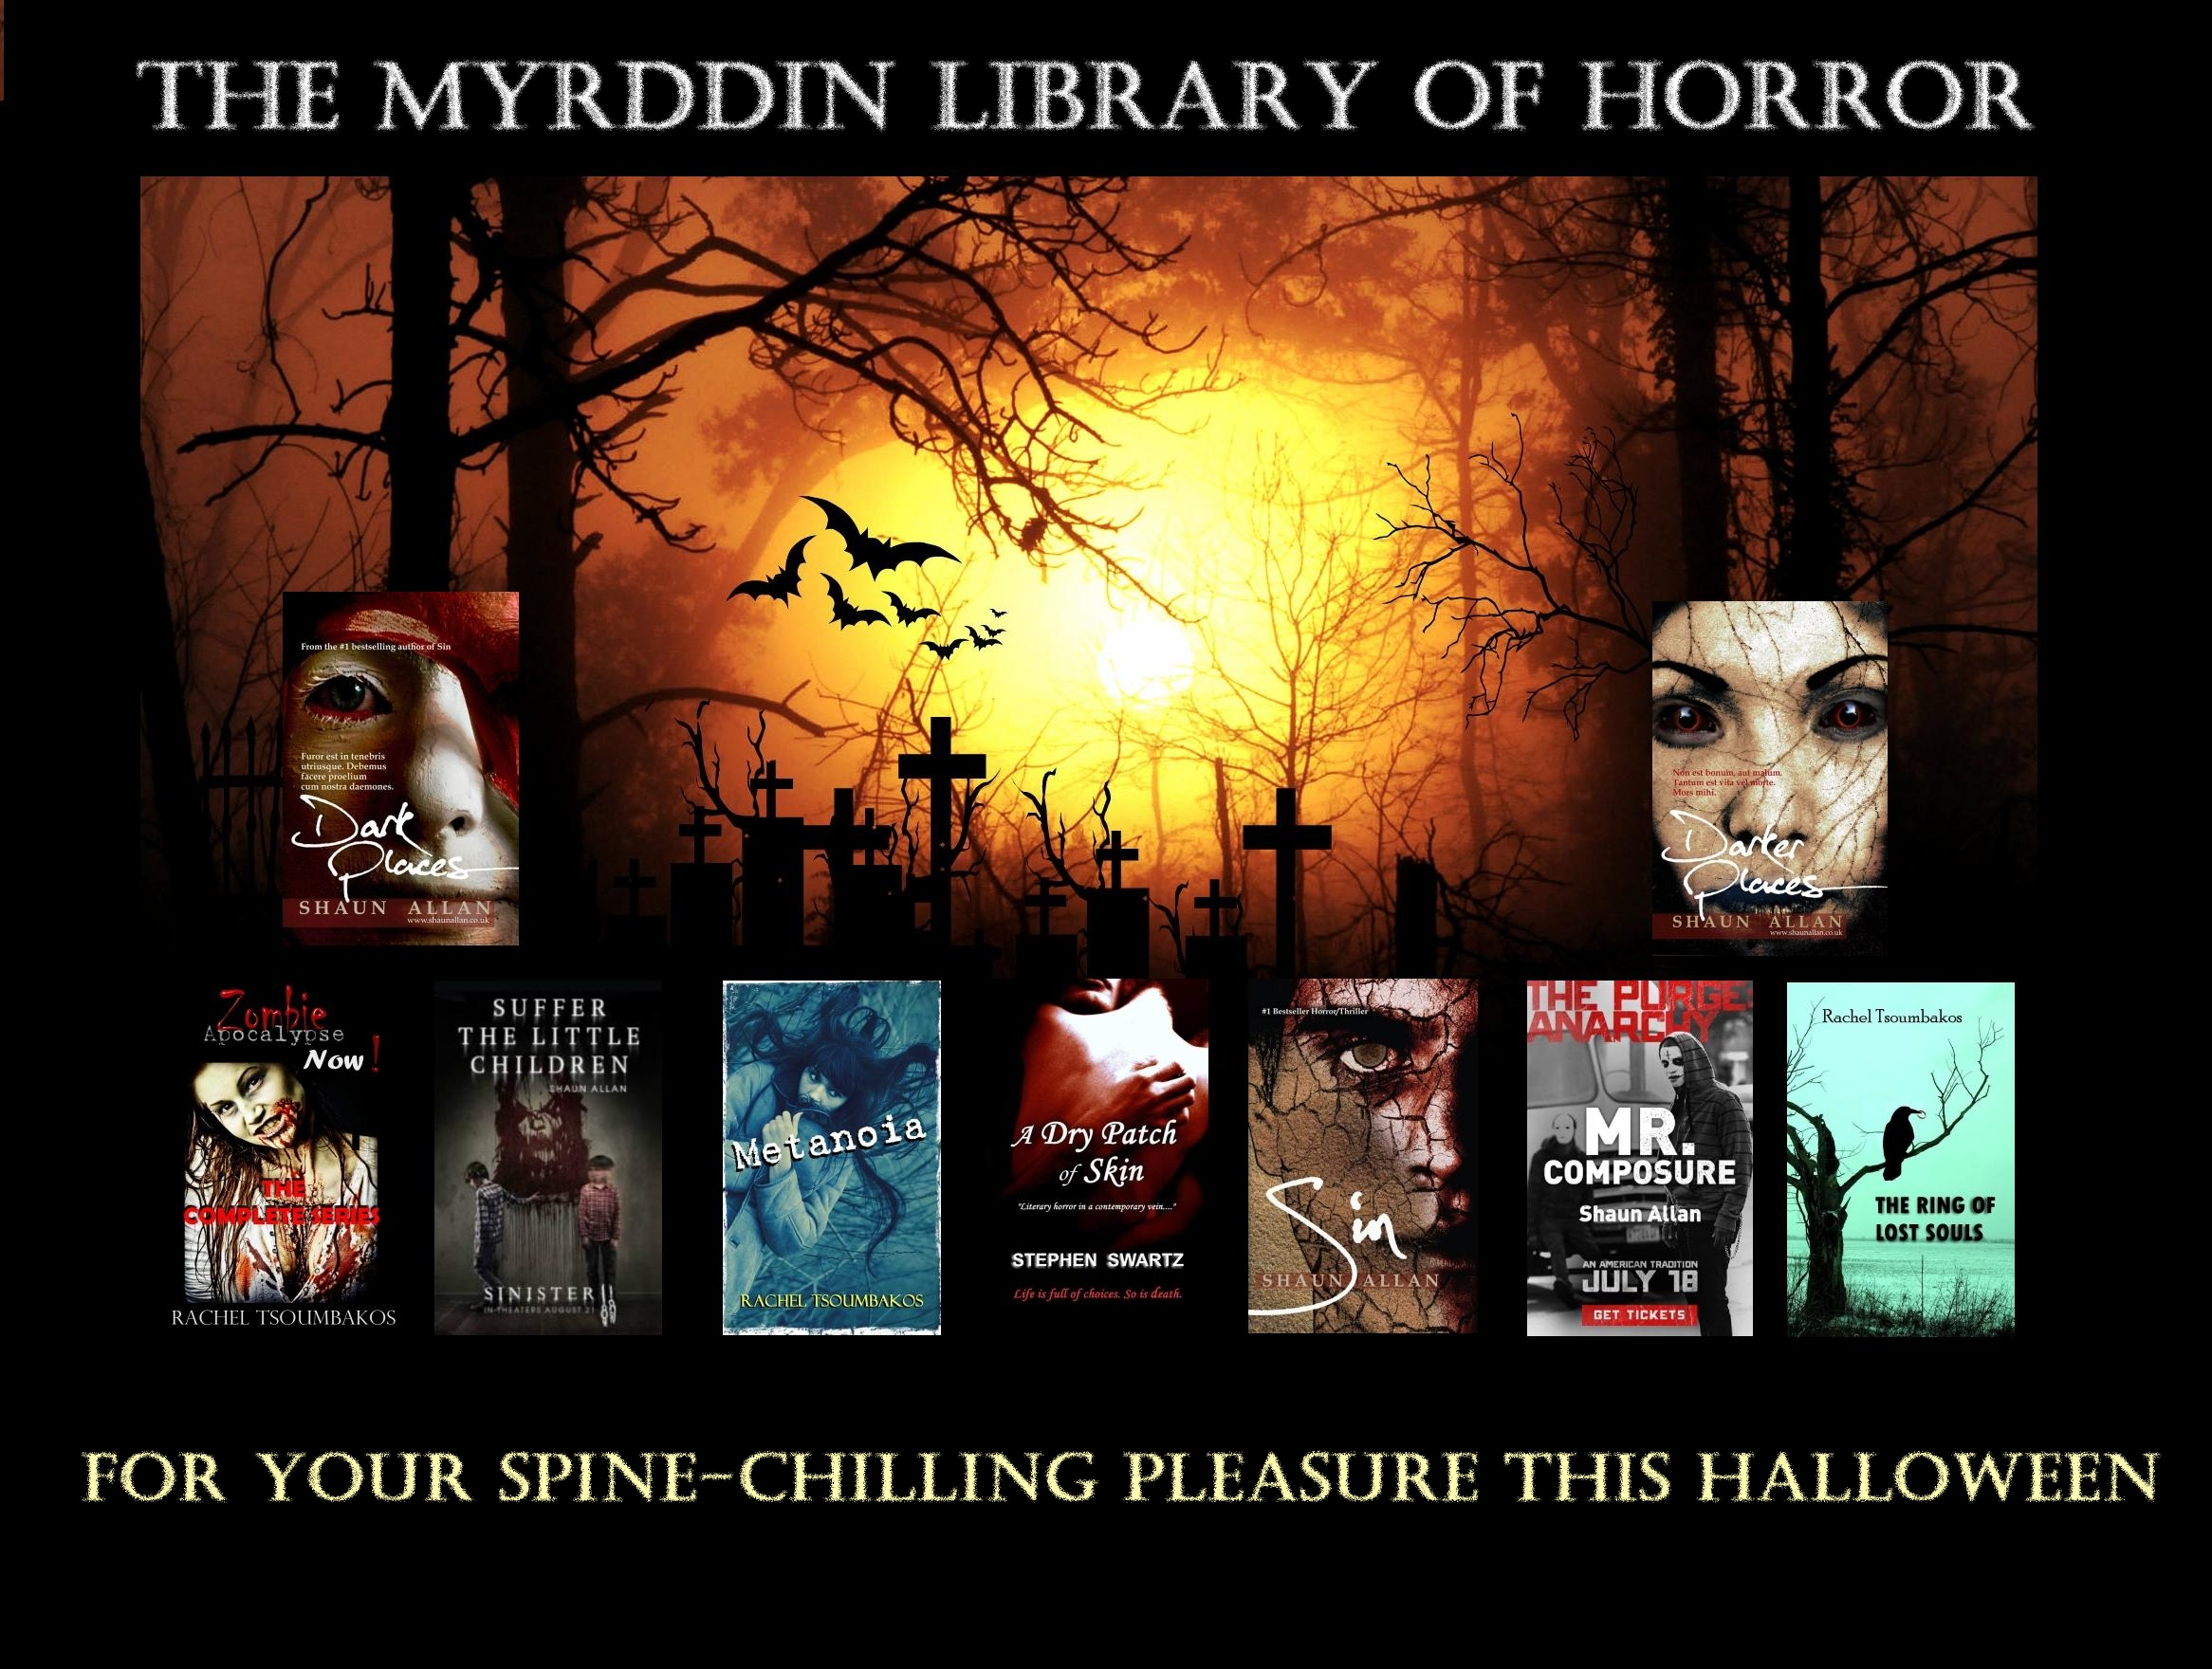 Myrddin Halloween 2015 image template books text